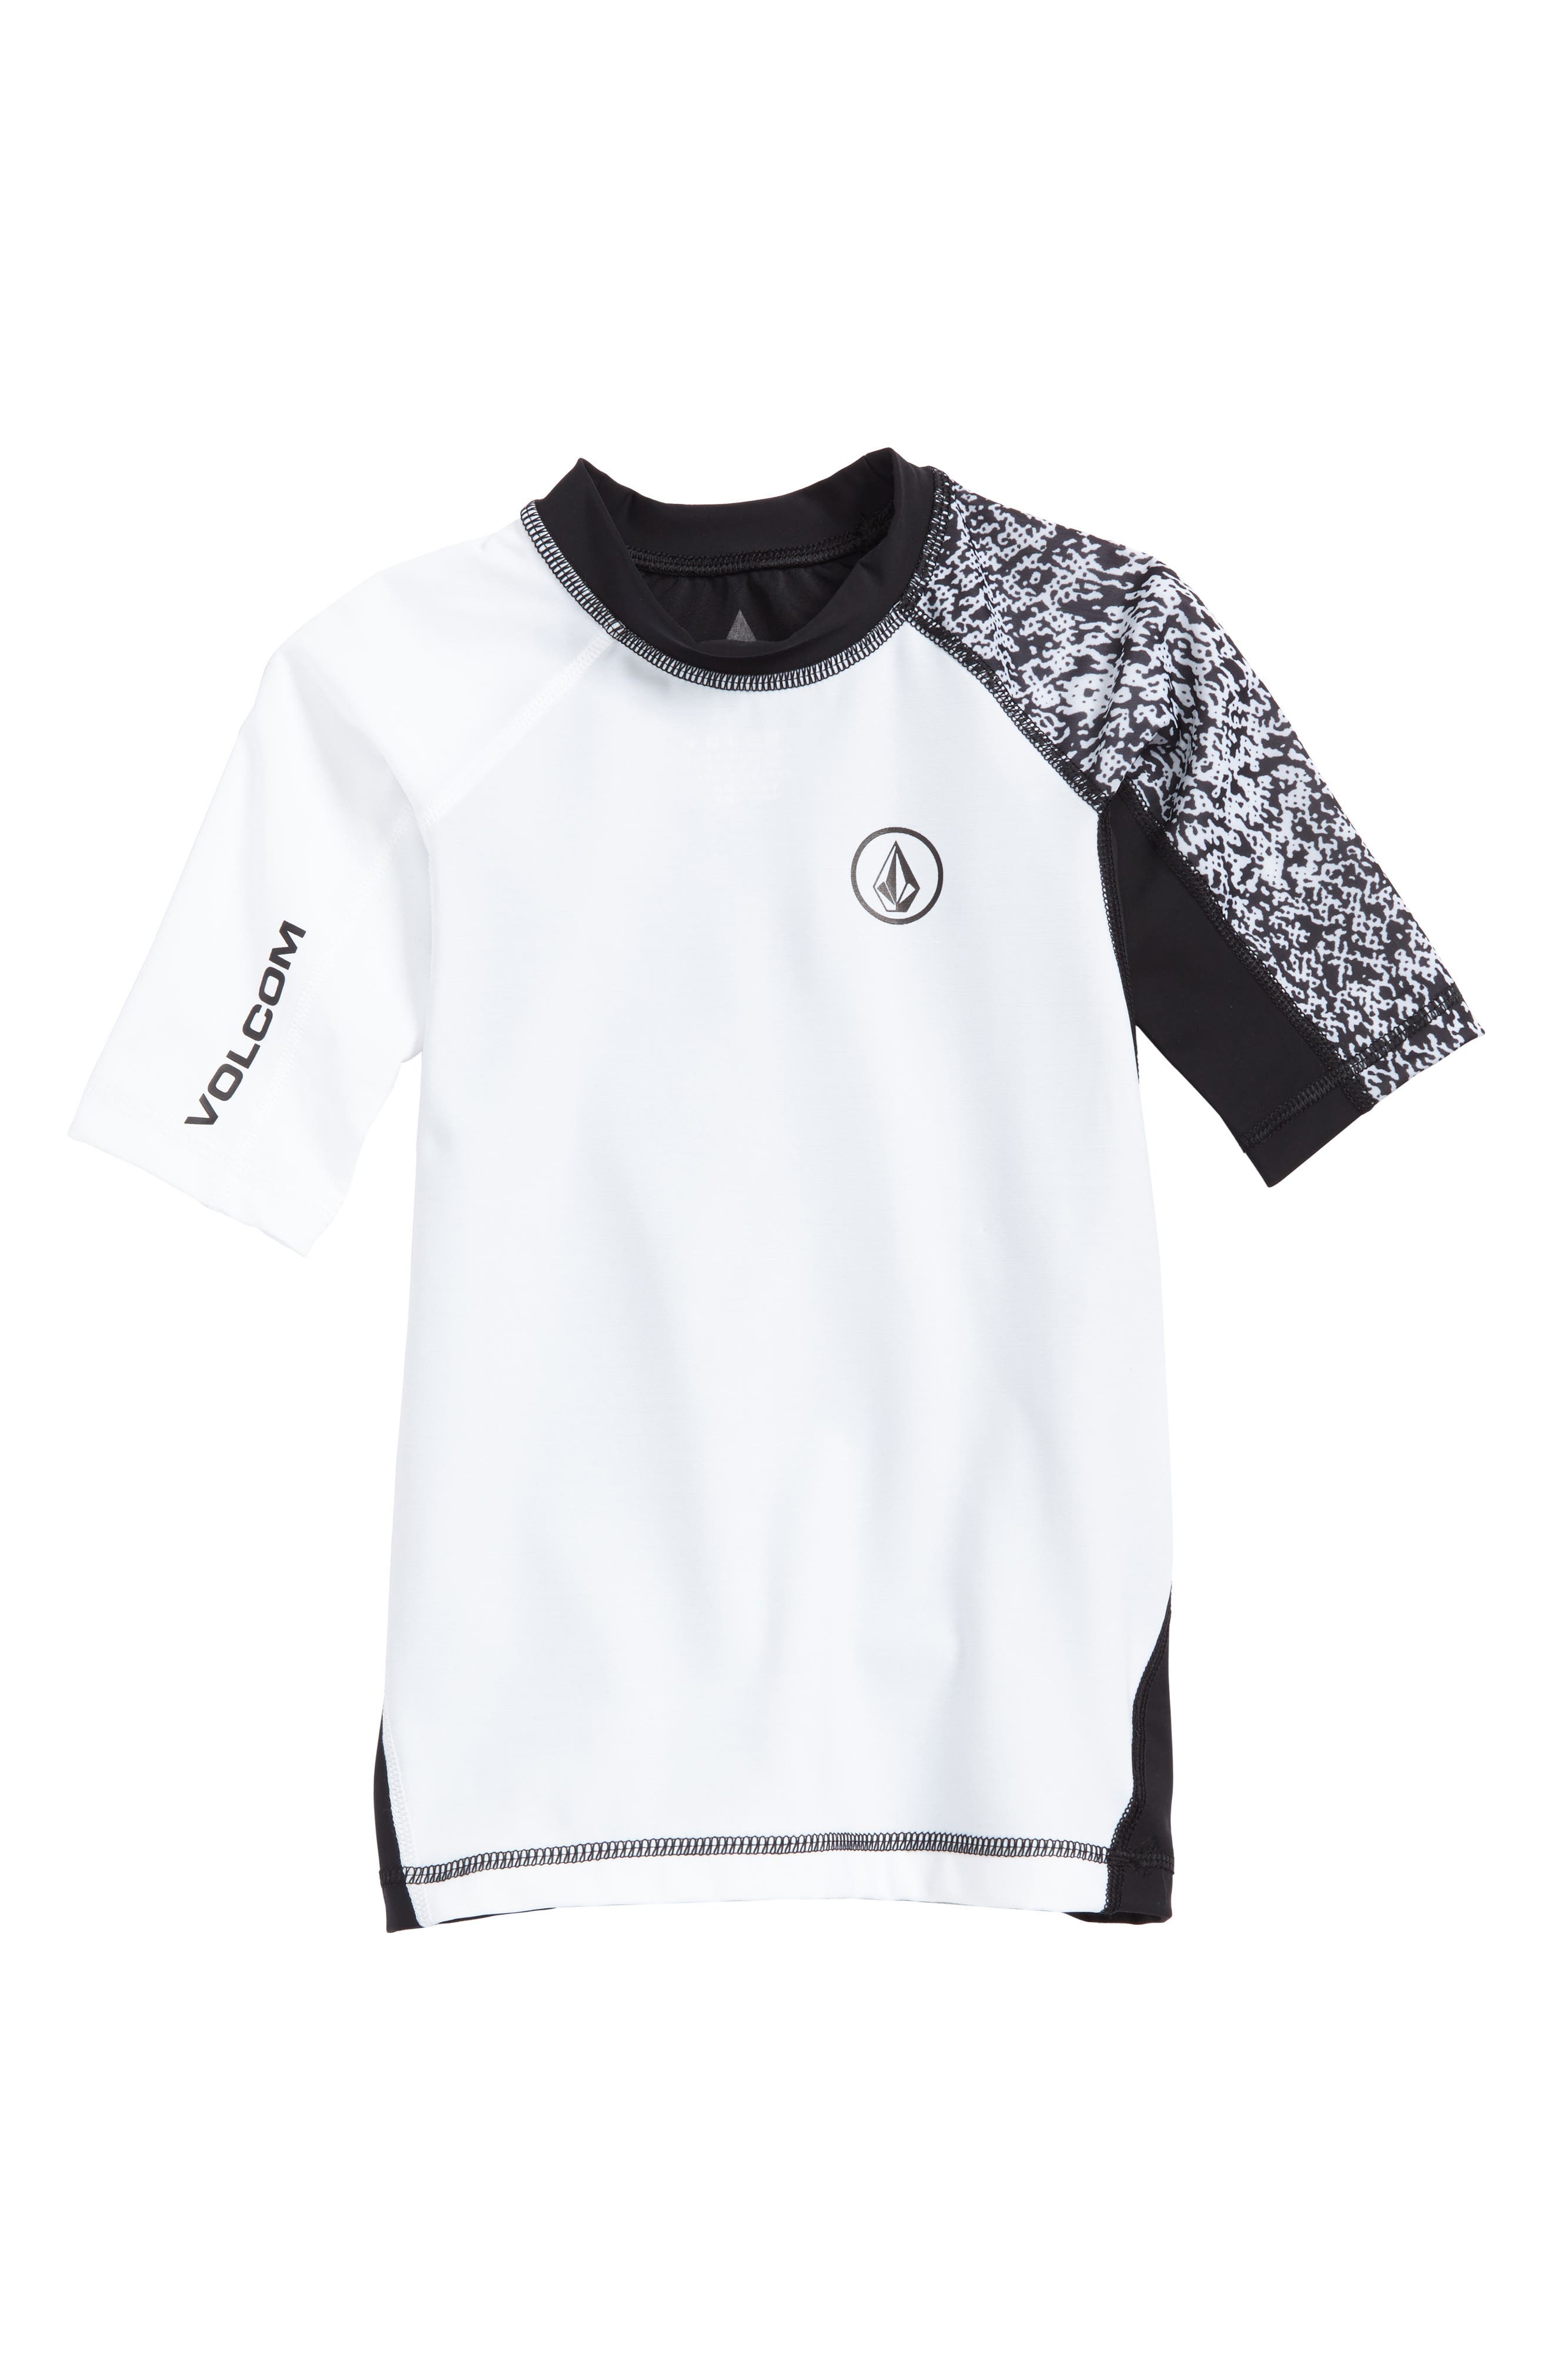 Volcom Lido Block Short Sleeve Rashguard (Toddler Boys & Little Boys)